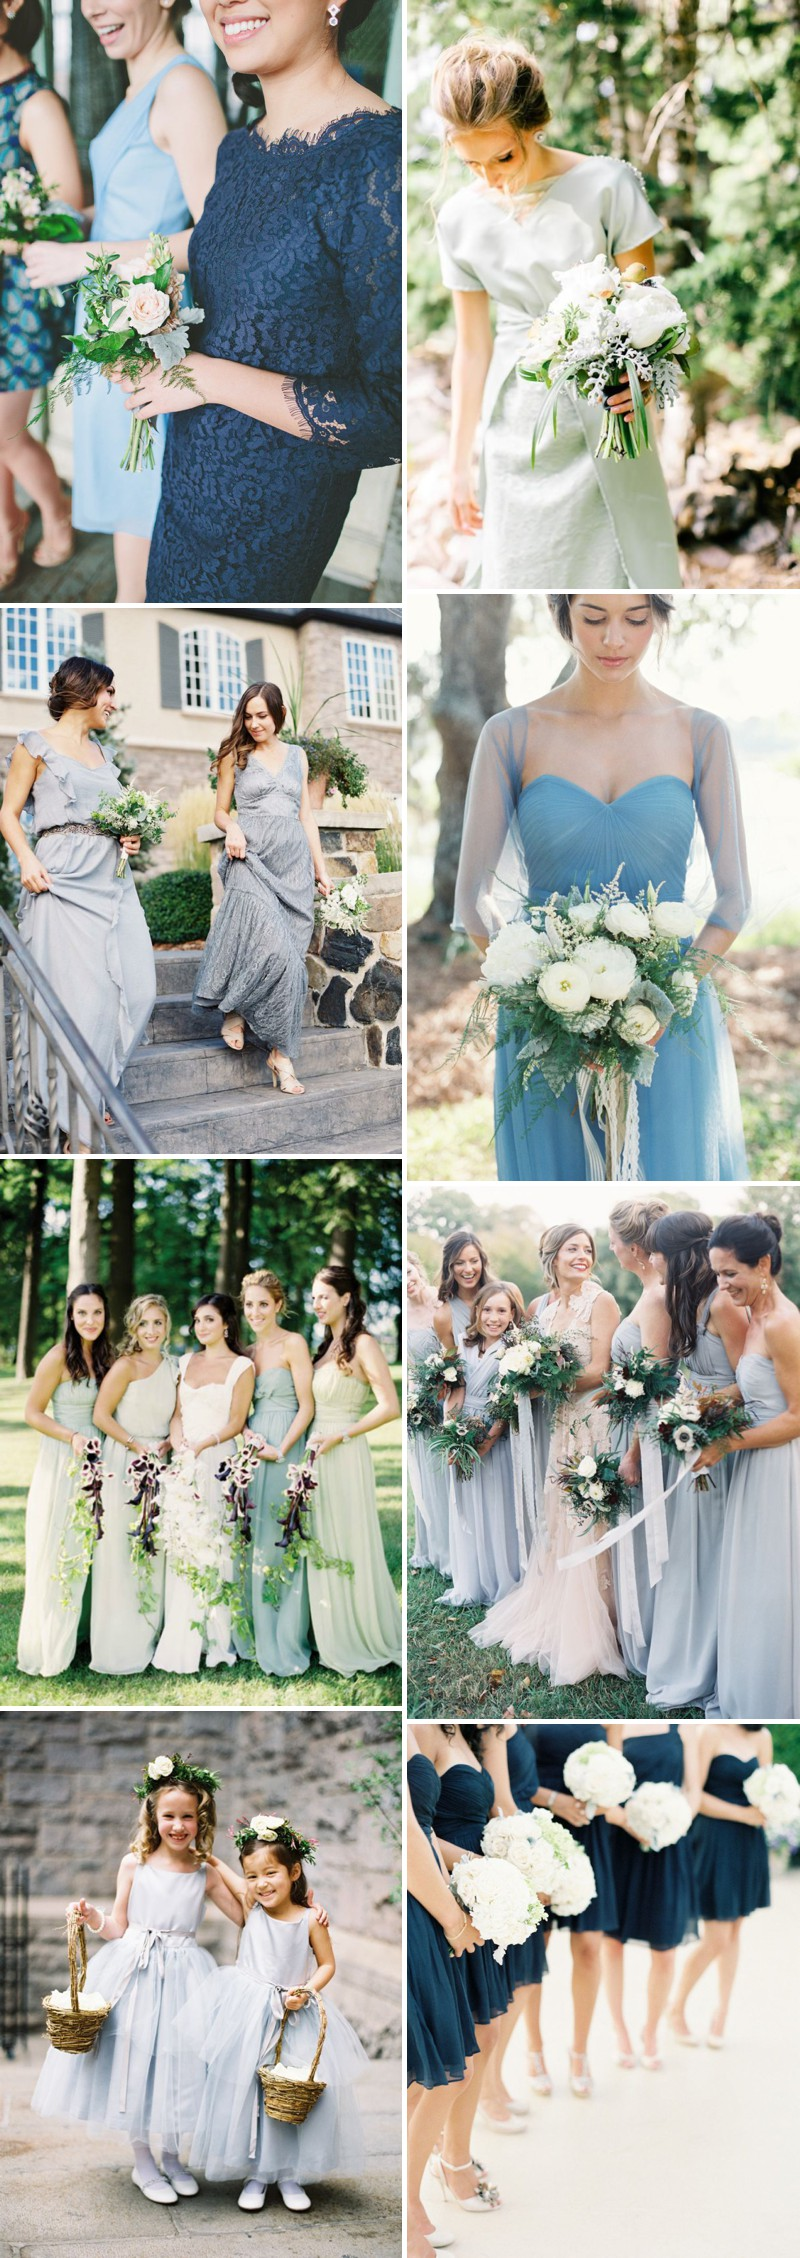 Four Beautiful Bridesmaid Trends For 2014 Including Metallics, Neutrals Blue and Black Colour Palettes._0001